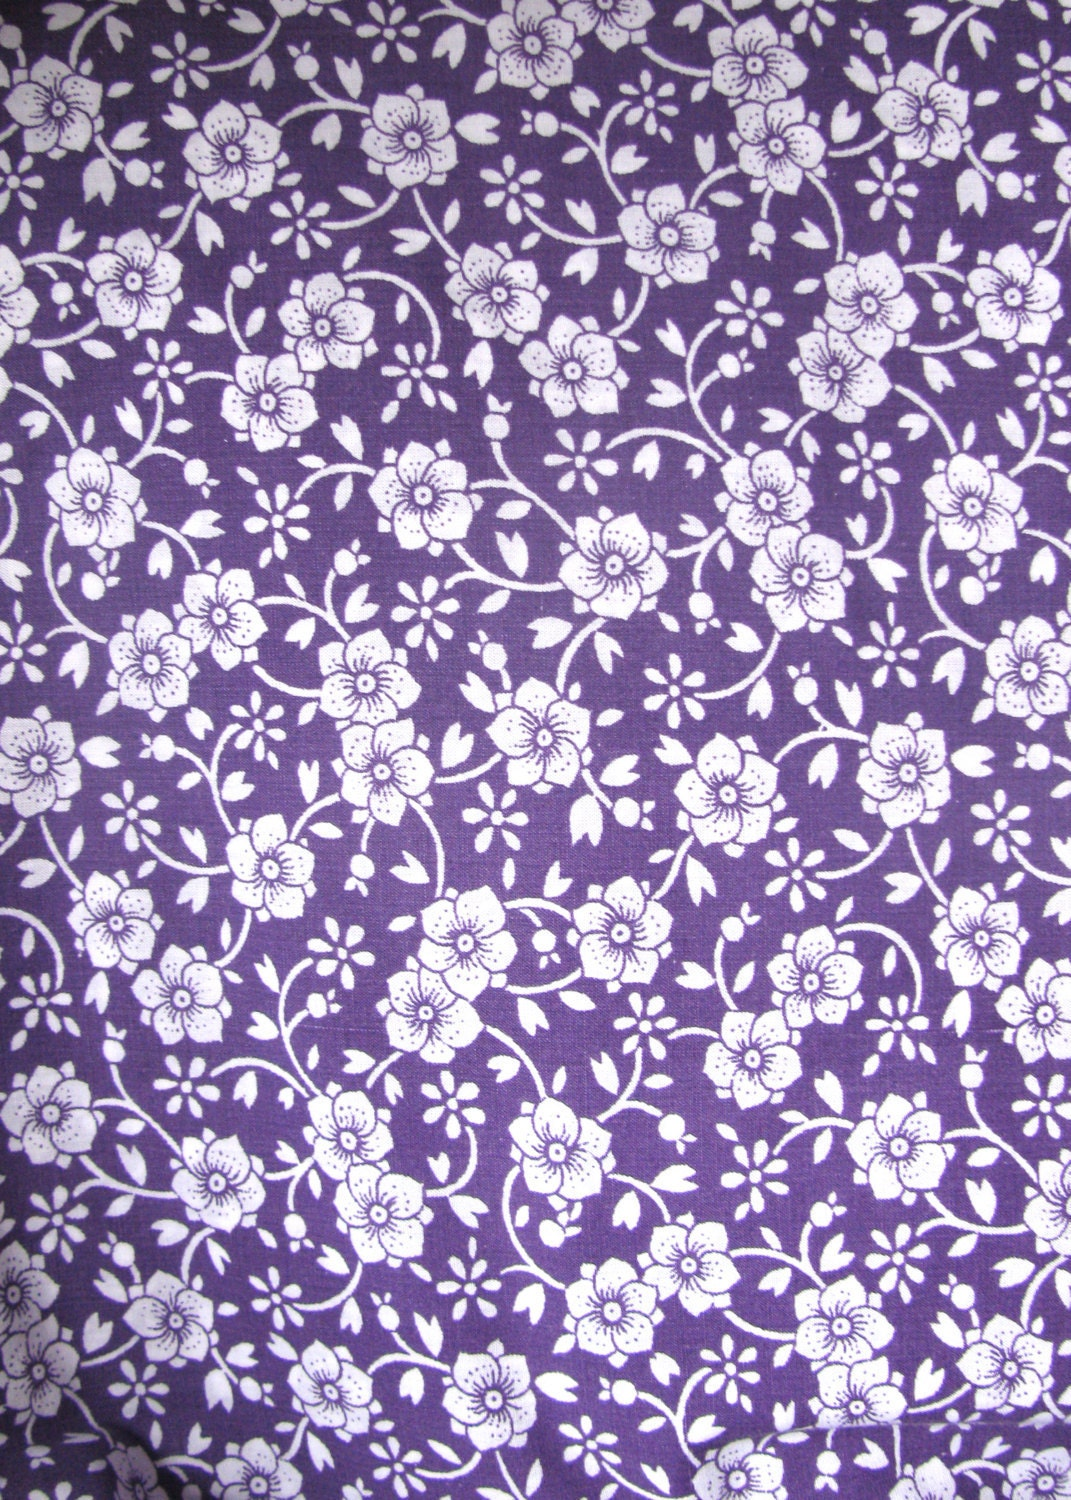 Purple vintage floral pattern - photo#8